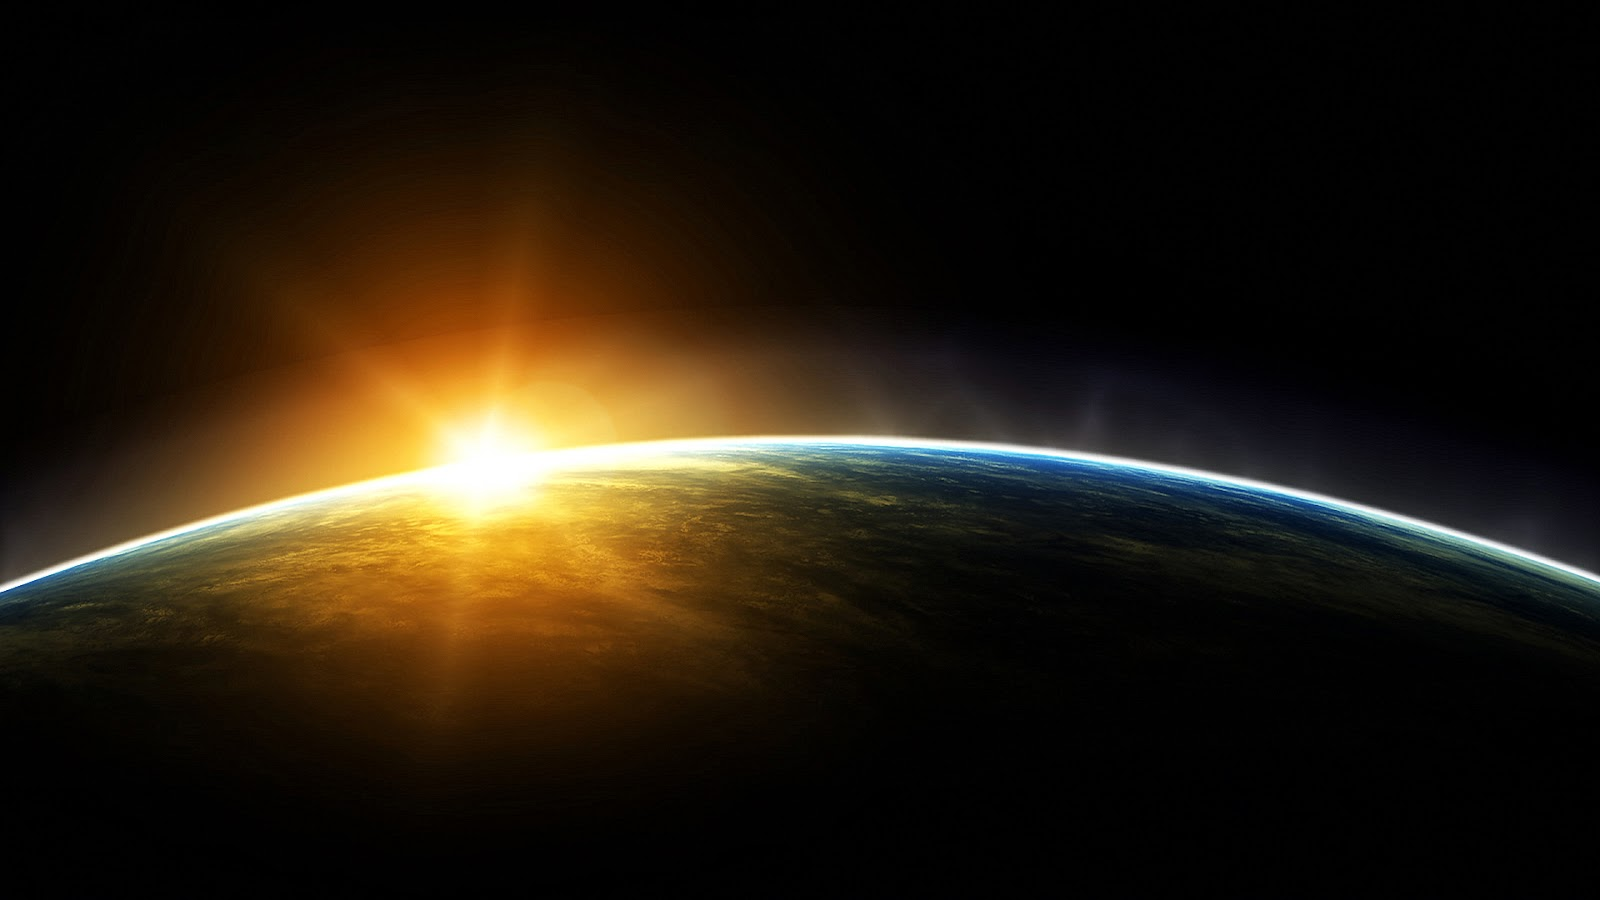 sunrise from space hd - photo #1